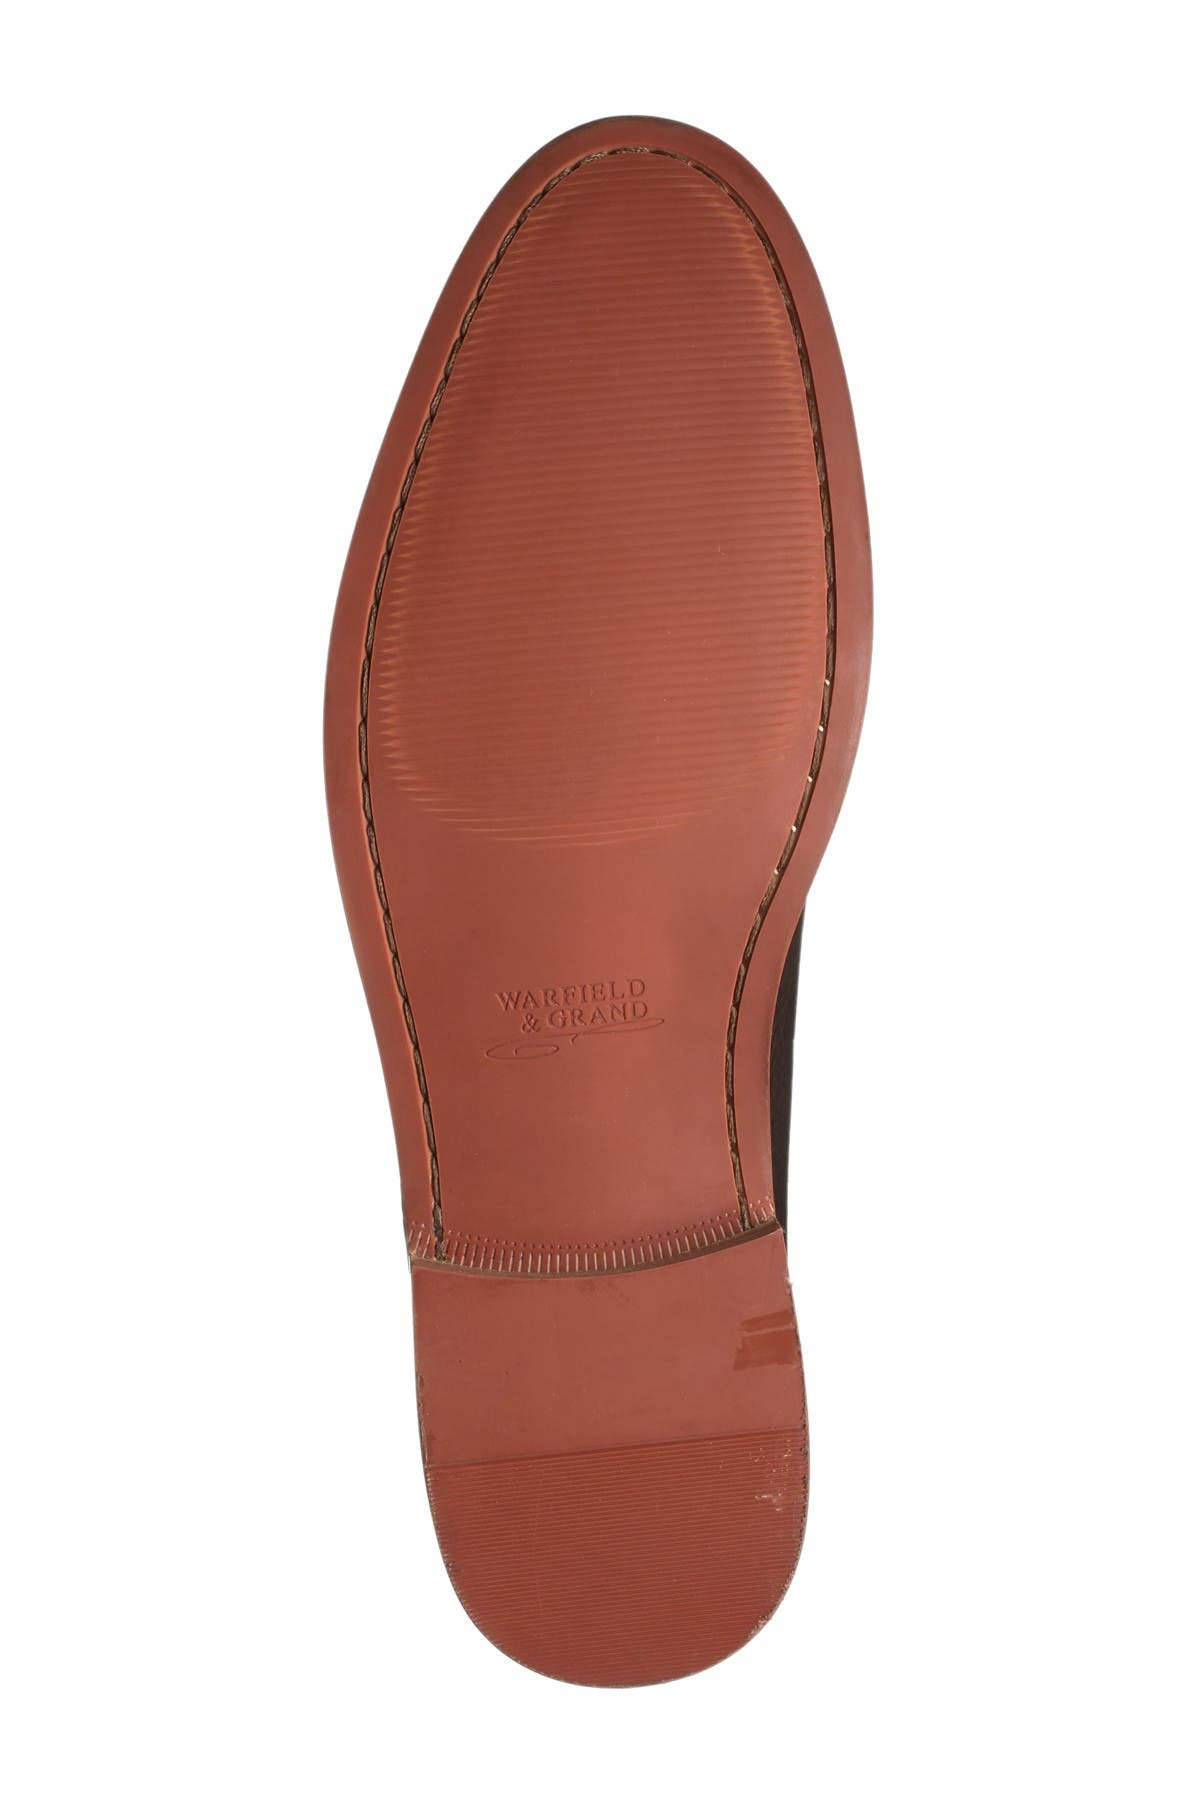 Image of Warfield & Grand Desi Loafer